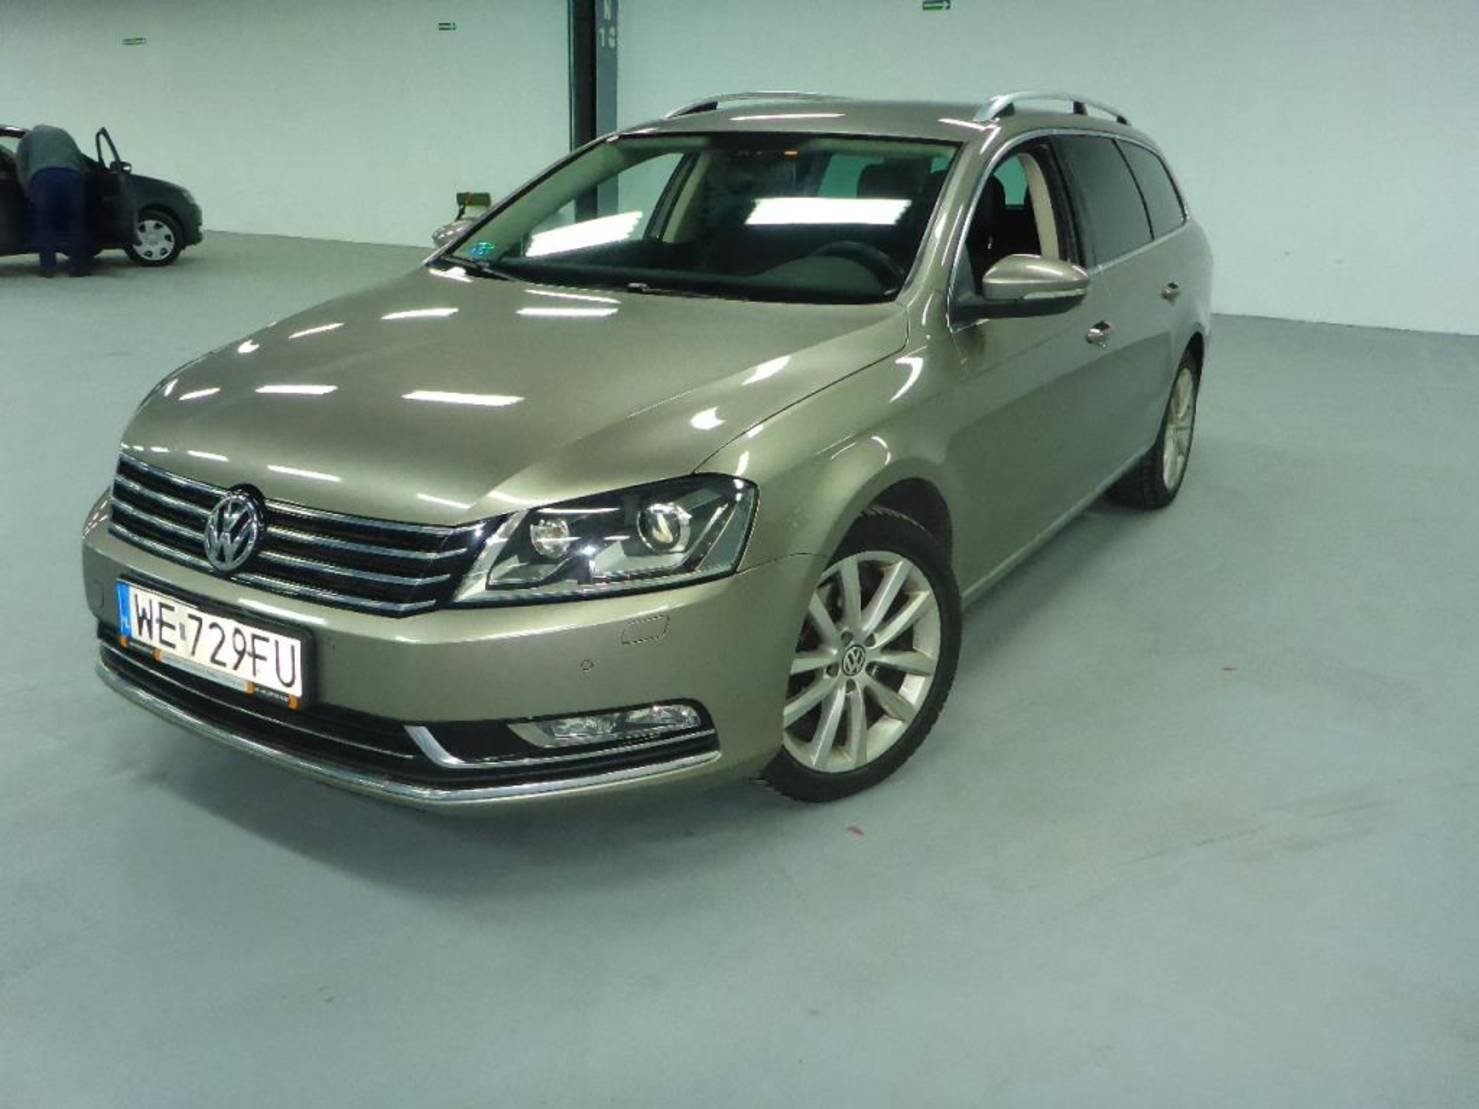 Volkswagen Passat Variant 2.0 TDI DSG BlueMotion Technology, Highline detail1